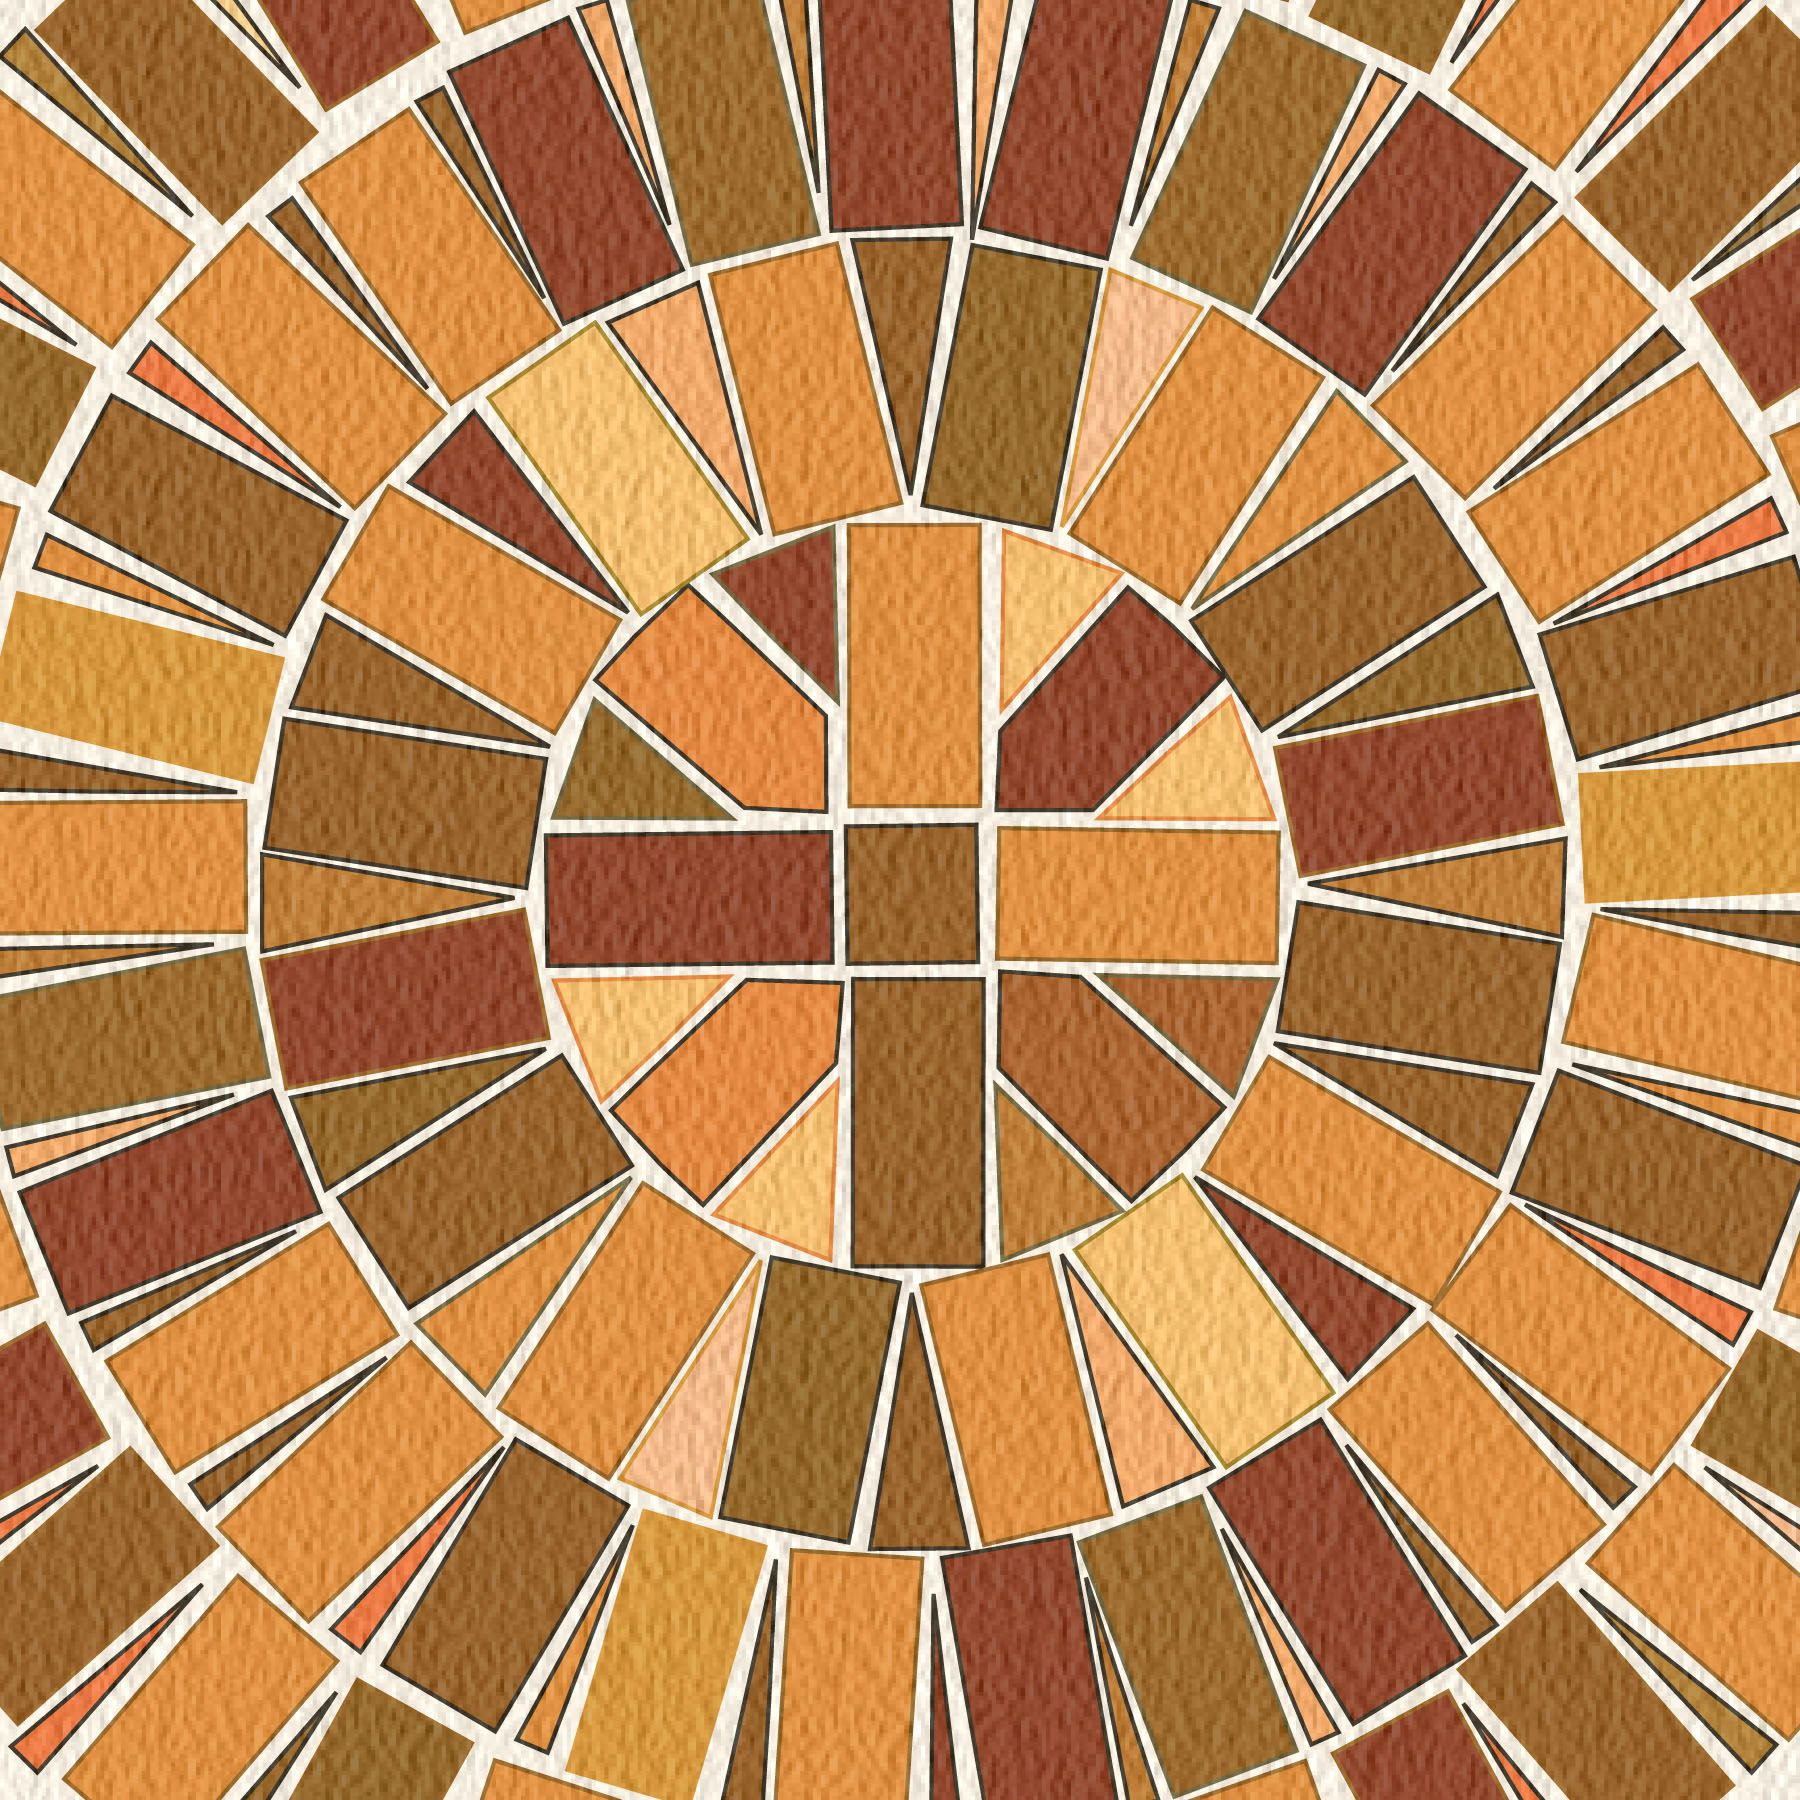 Brick Paver Patterns The Basic Brick Patterns For Patios And Paths